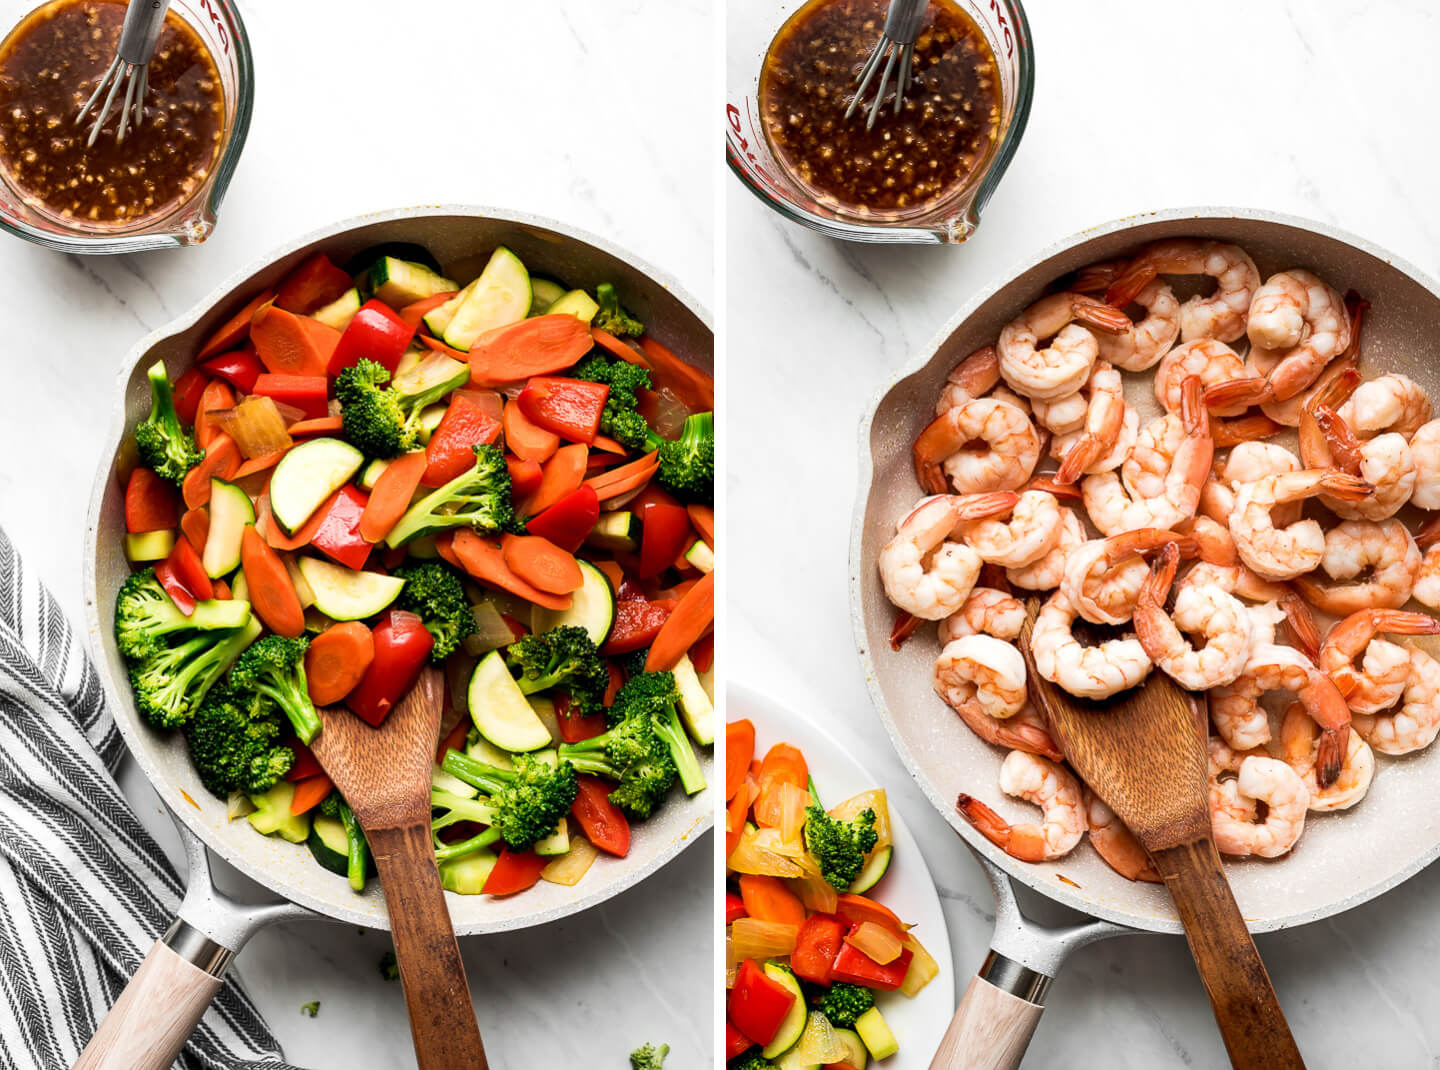 Cooked vegetables in a pan and cooked shrimp in a pan.